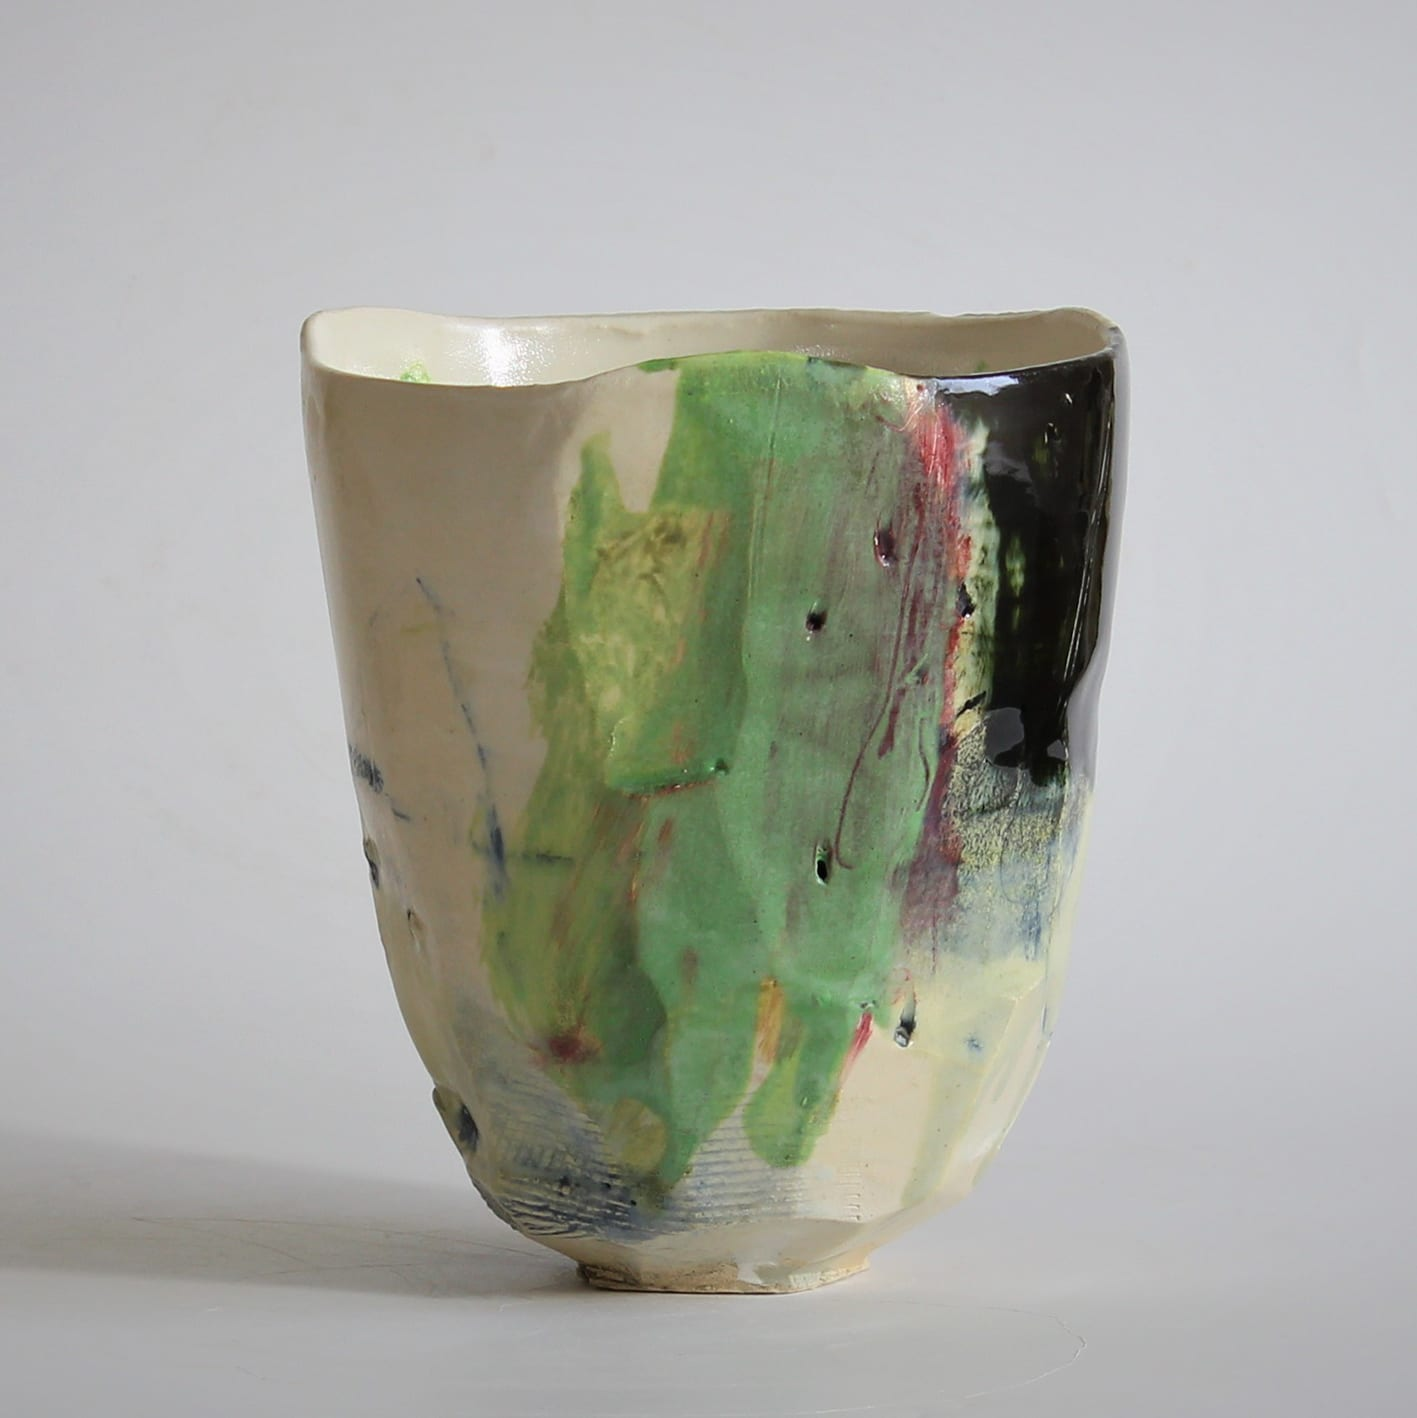 """<span class=""""link fancybox-details-link""""><a href=""""/artists/34-barry-stedman/works/6730-barry-stedman-each-passing-day-series-vessel-d-2019/"""">View Detail Page</a></span><div class=""""artist""""><strong>Barry Stedman</strong></div> b. 1965 <div class=""""title""""><em>'Each Passing Day' Series Vessel (D)</em>, 2019</div> <div class=""""medium"""">thrown and altered earthenware, decorated with slips</div> <div class=""""dimensions"""">16 x 14 cm</div><div class=""""price"""">£255.00</div><div class=""""copyright_line"""">Own Art: £ 25.50 x 10 Months, 0% APR</div>"""